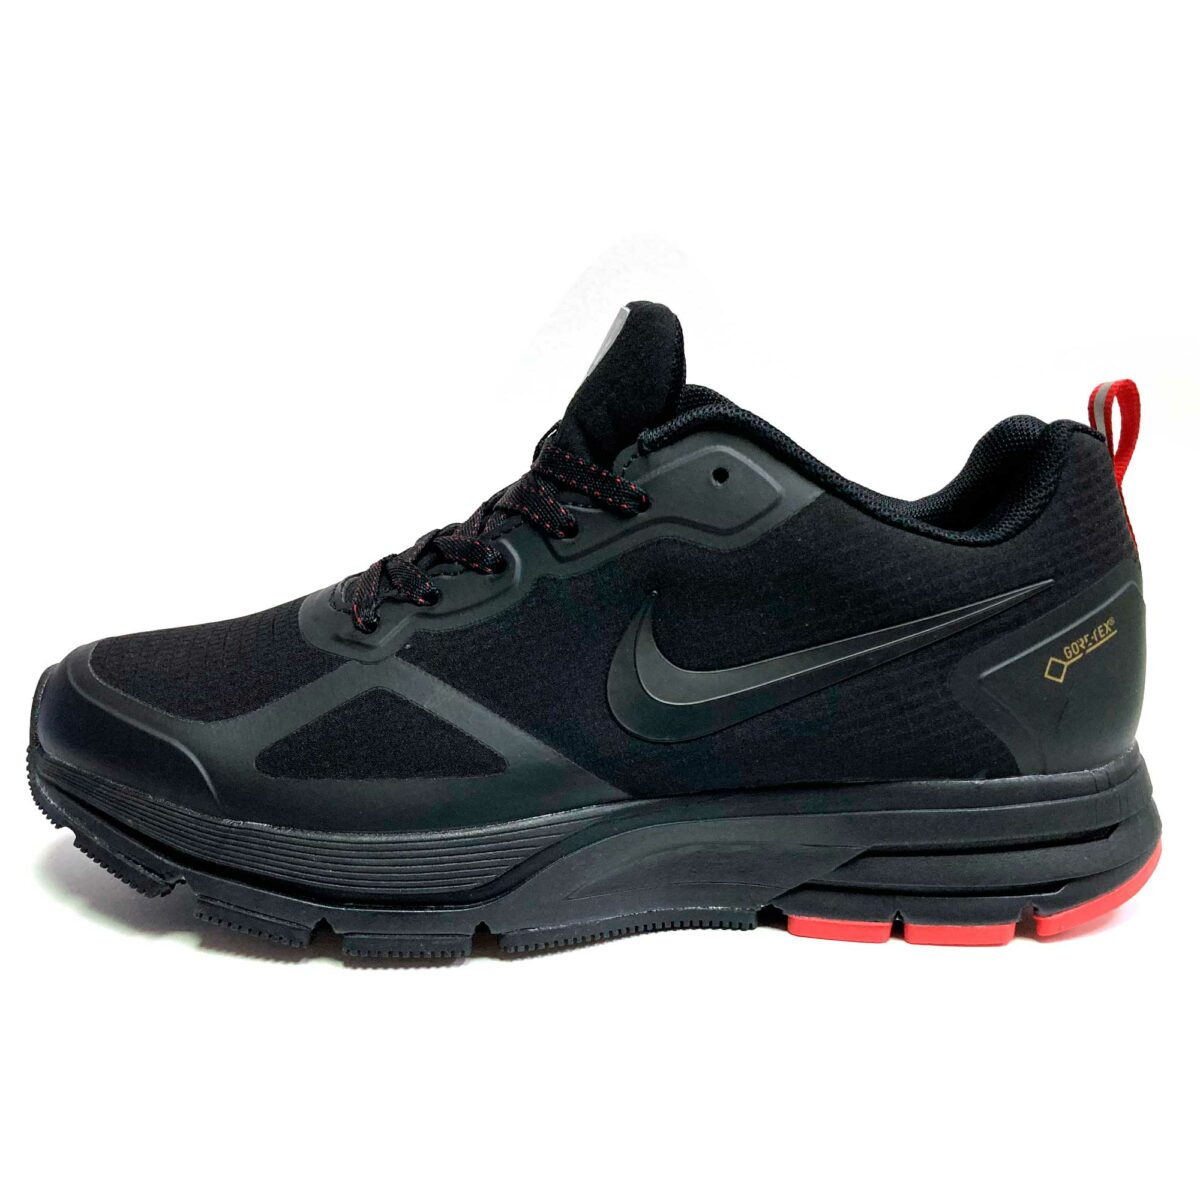 nike pegasus gore-tex black red купить